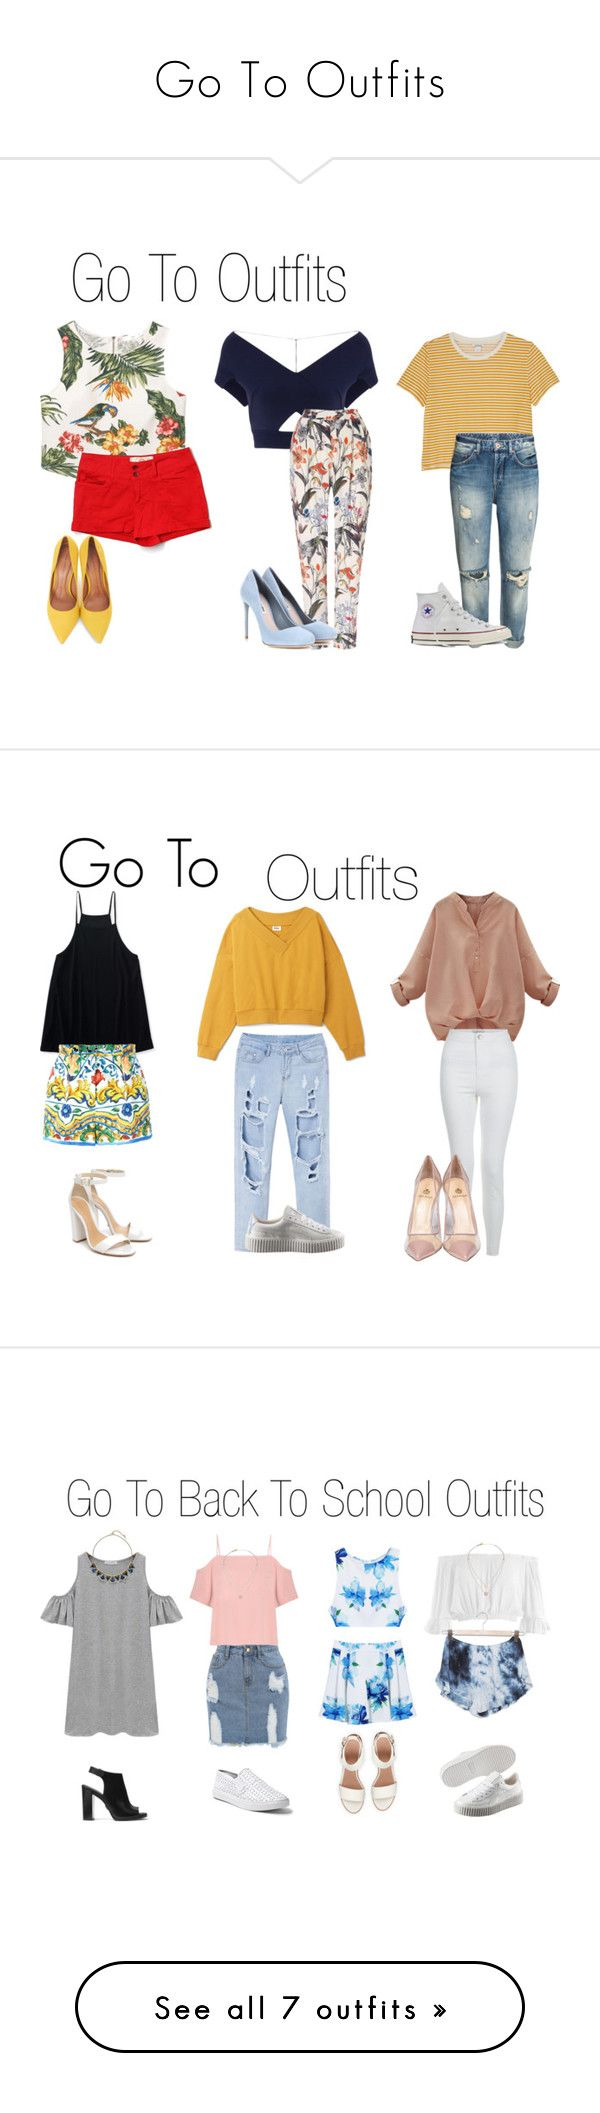 """Go To Outfits"" by lailasinspo on Polyvore featuring MANGO, Roland Mouret, Monki, Bella Dahl, Phase Eight, Converse, Miu Miu, Moda In Pelle, Aéropostale and Dolce&Gabbana"